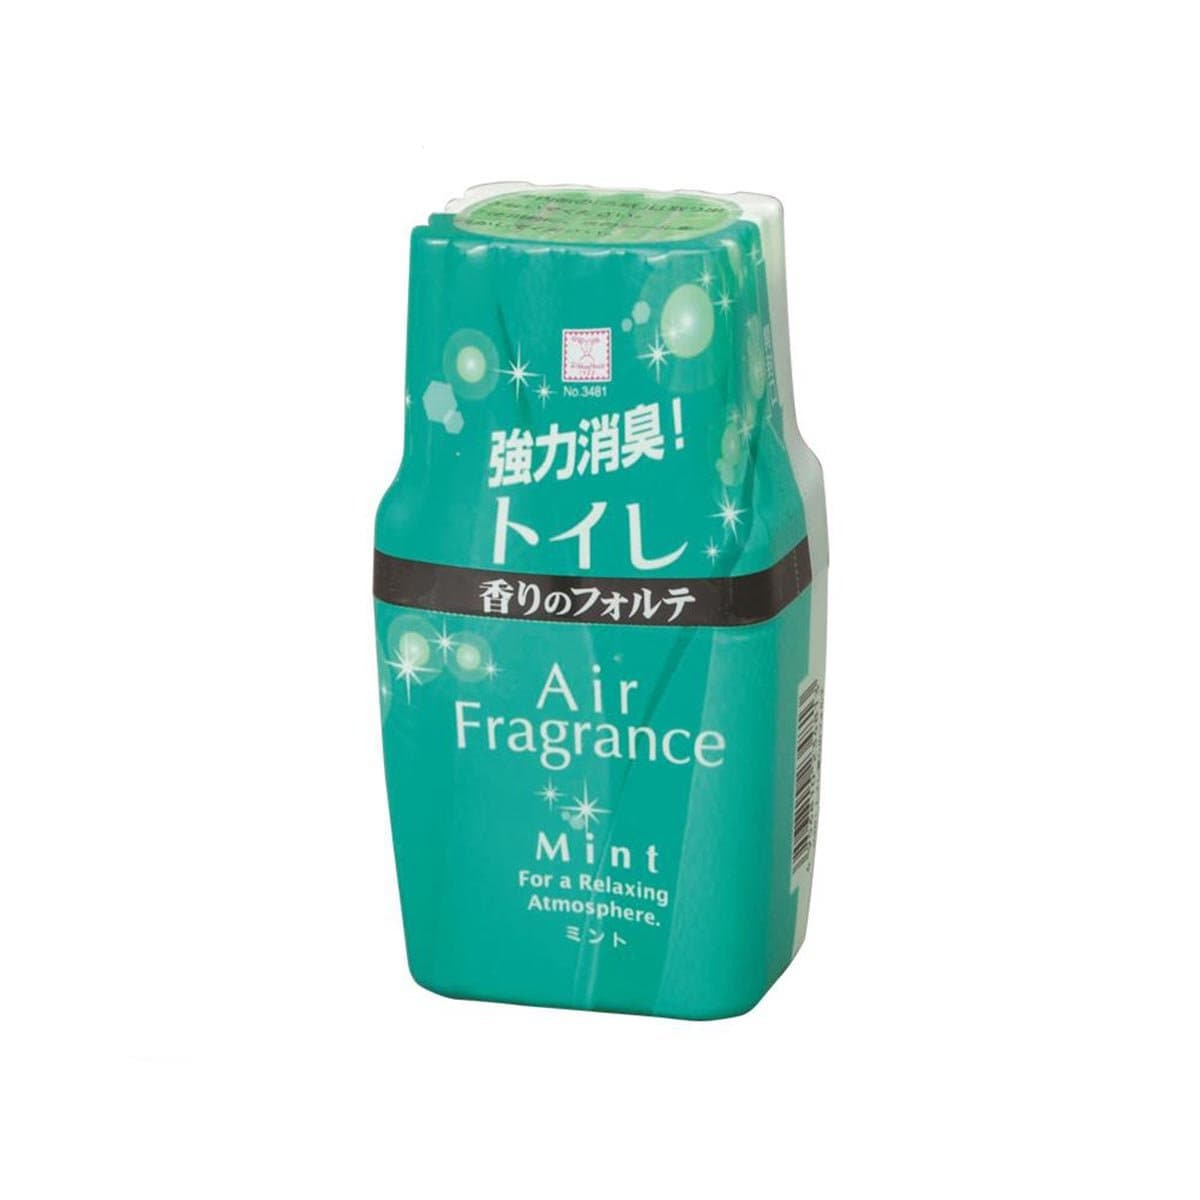 Japanese Toilet Deodorant Air Fragrance Mint Scent